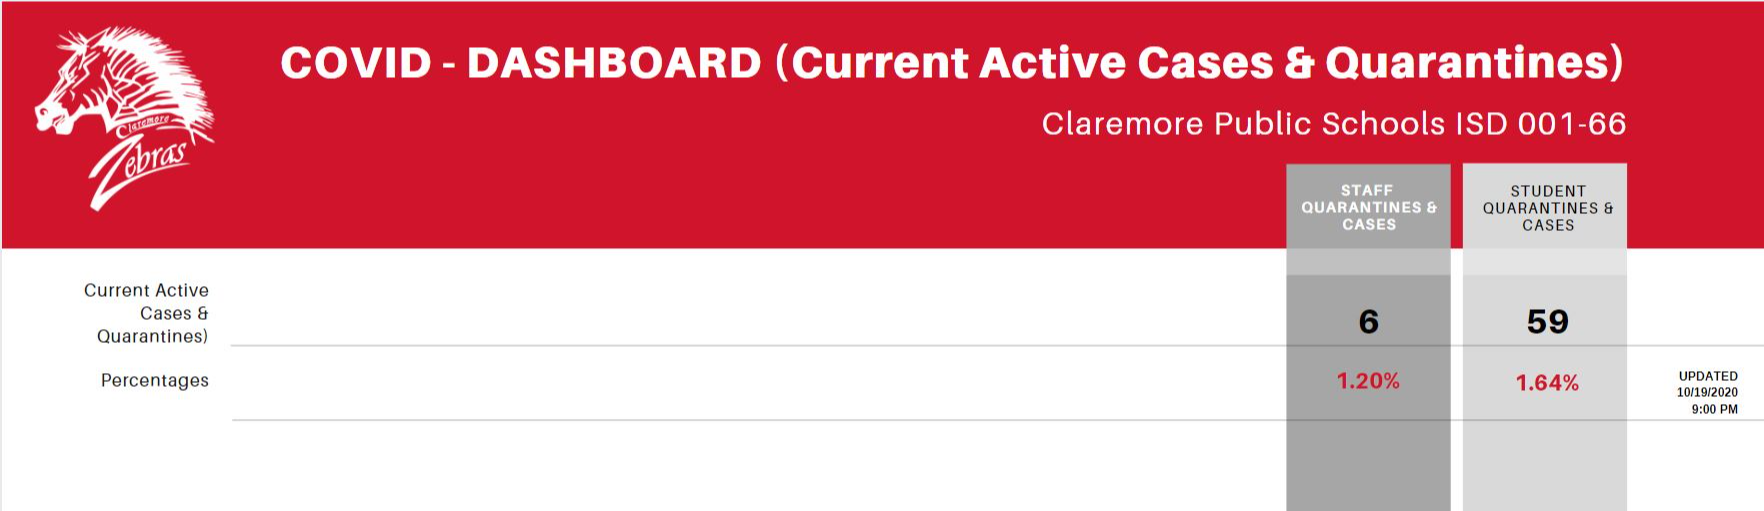 COVID Dashboard Current/Active Q & C